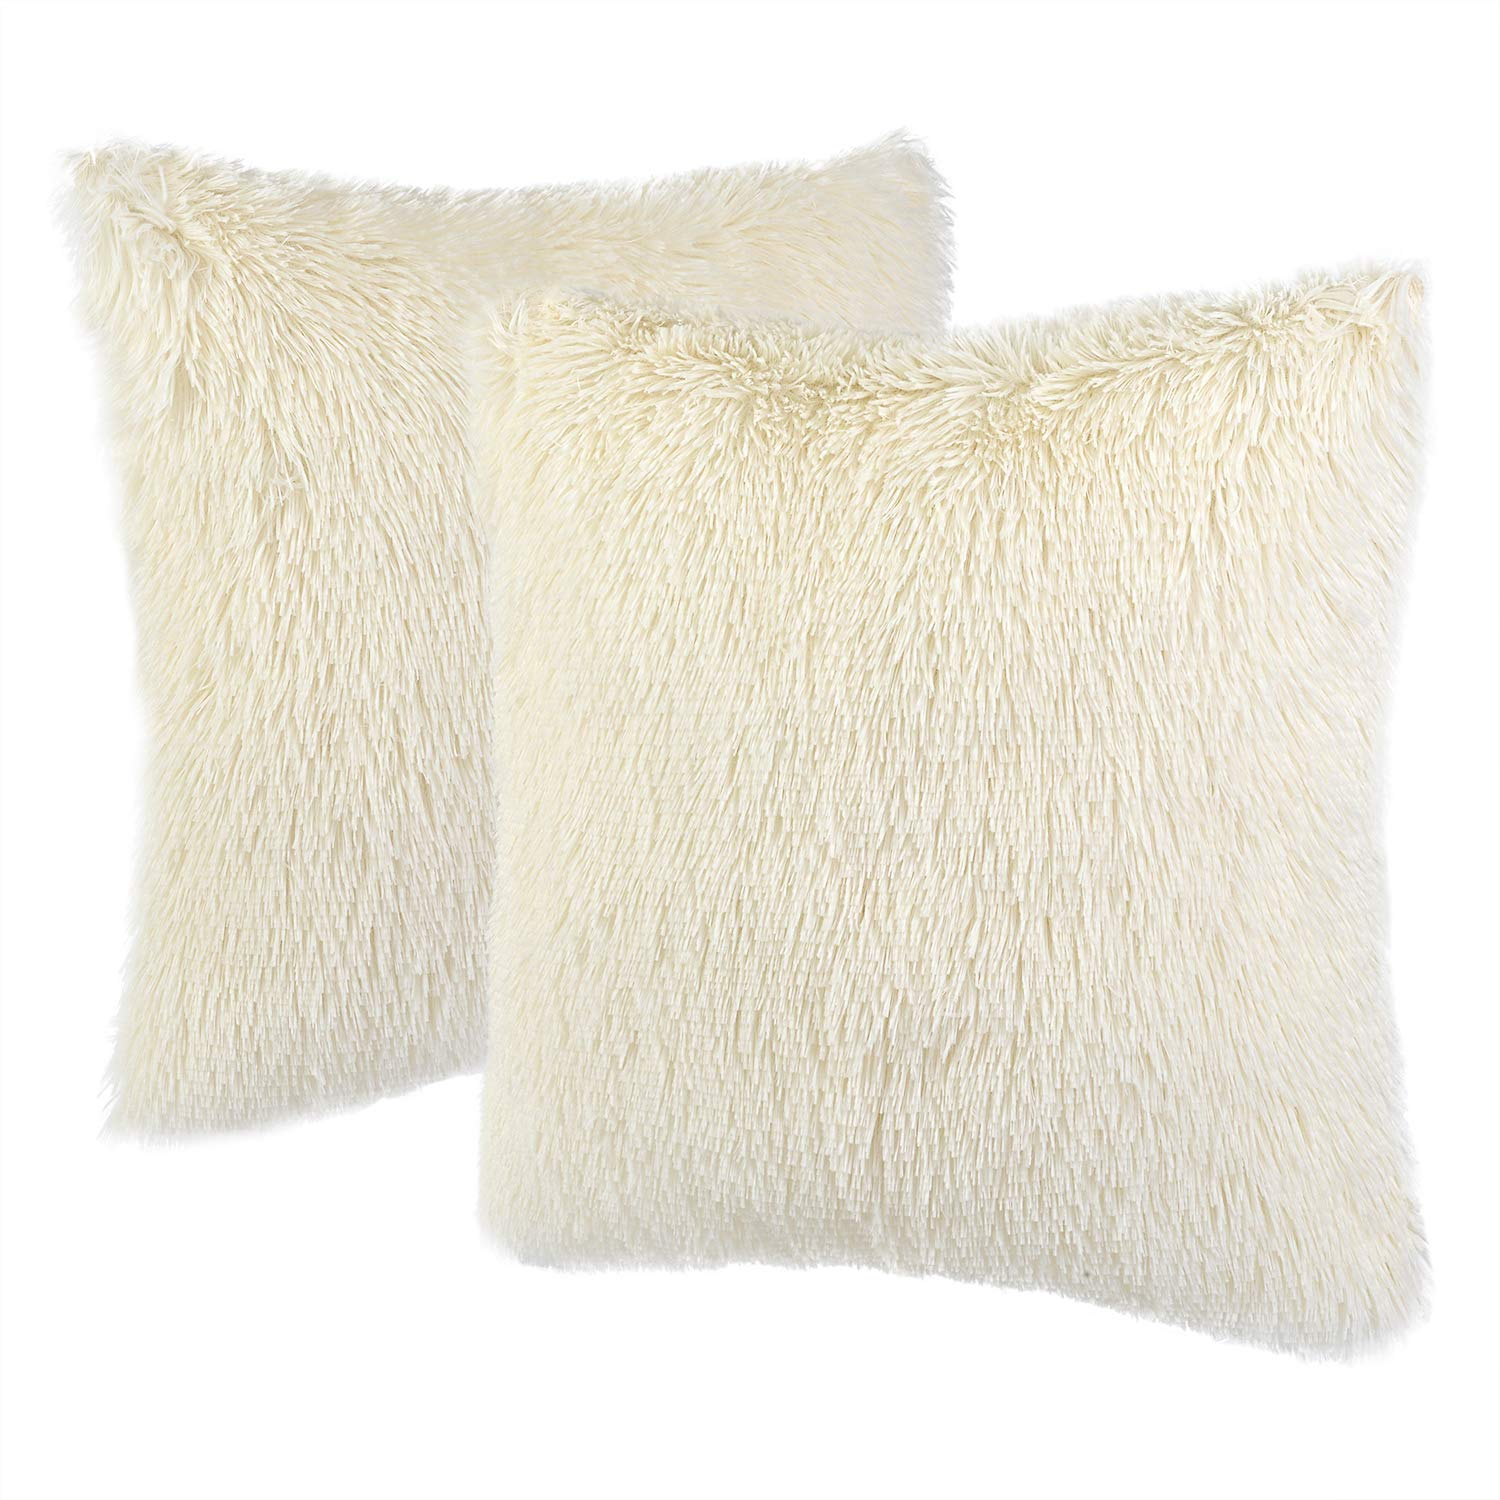 NordECO Home Luxury Soft Faux Fur Fleece Cushion Cover Pillowcase Decorative Throw Pillows Covers, No Pillow Insert, 18'' x 18'' inch, White, 2 Pack